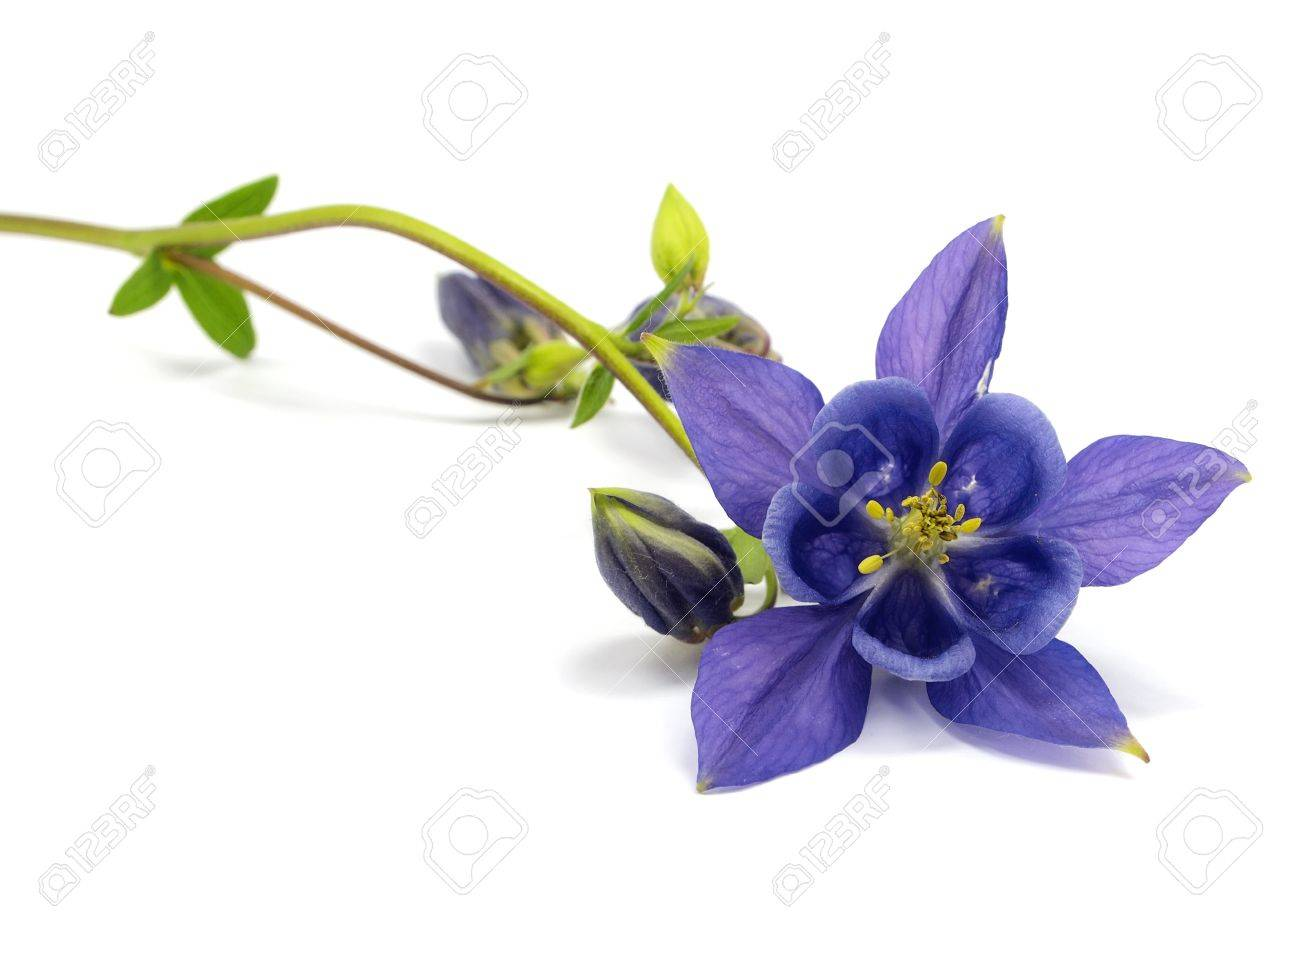 Purple columbine flower stock photos pictures royalty free purple columbine flower blue columbine aquilegia flowers on a white background dhlflorist Gallery